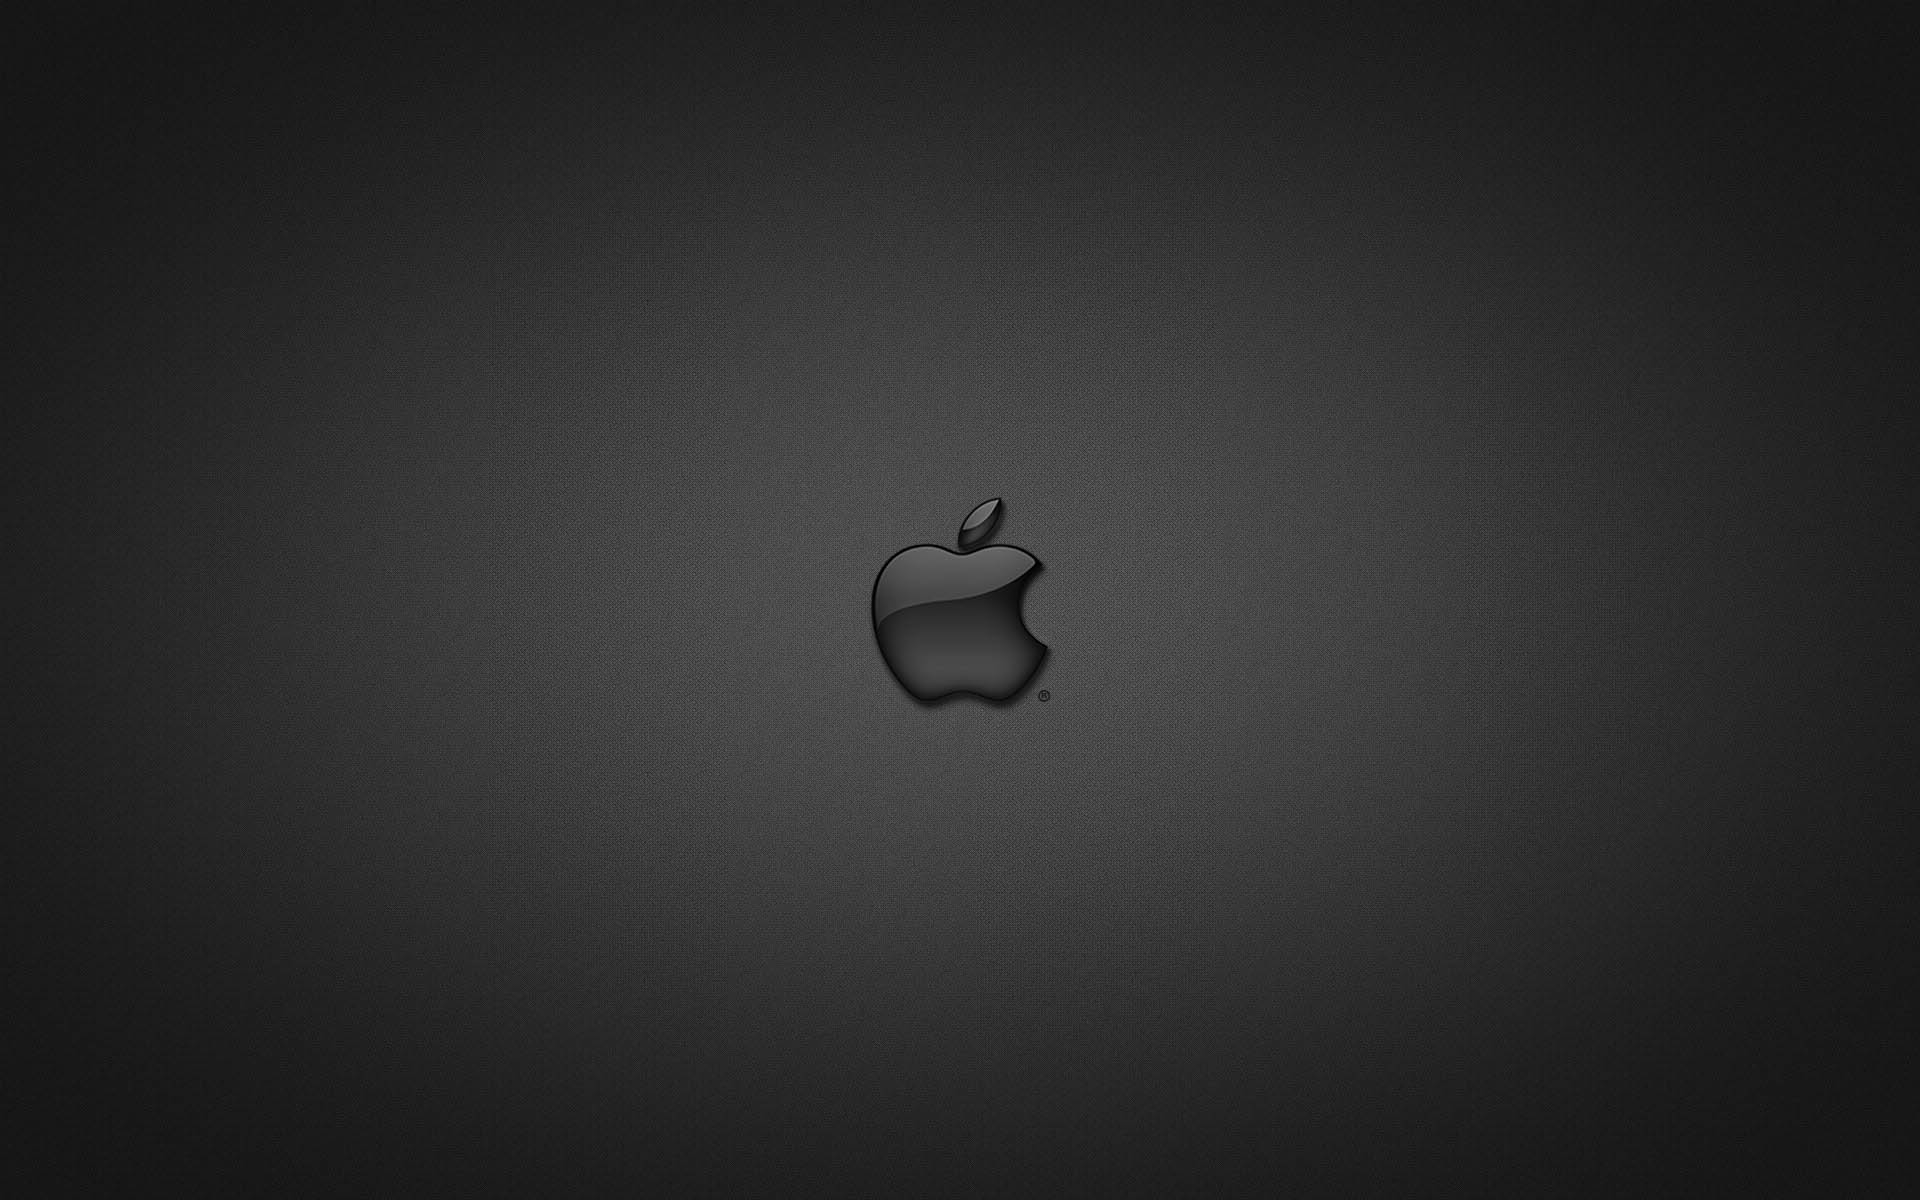 Apple in Glass Black Wallpapers | HD Wallpapers